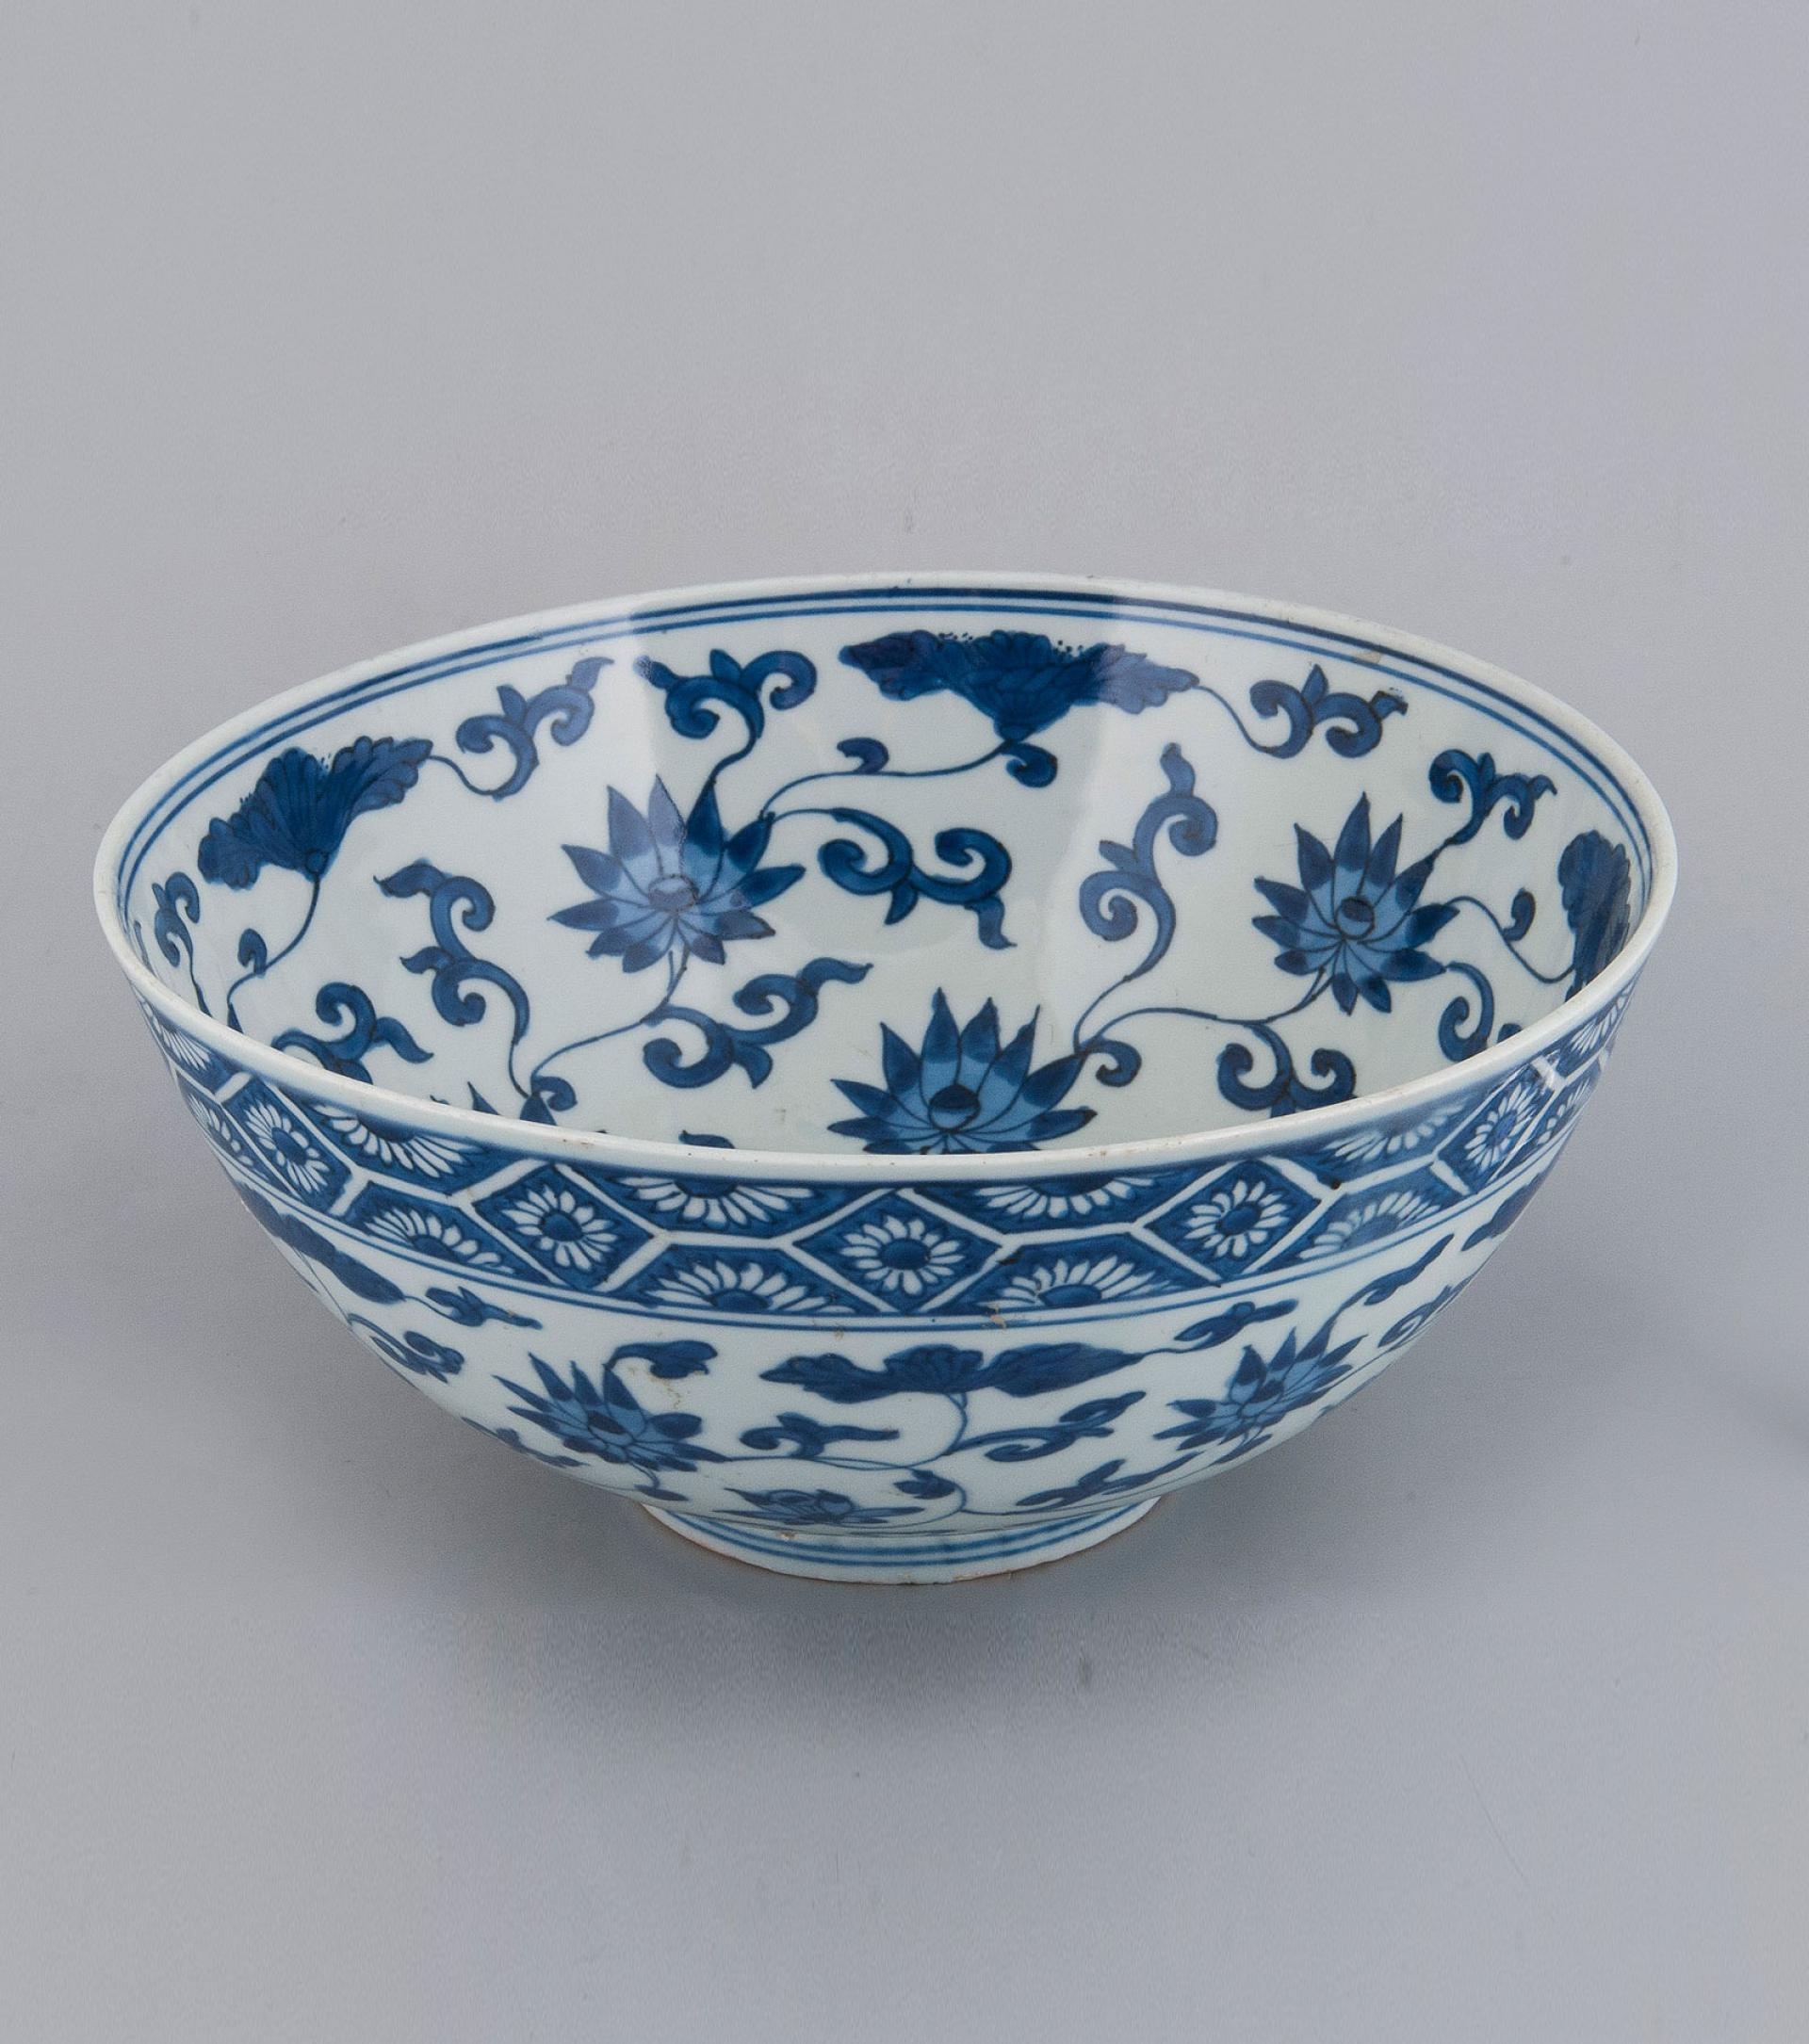 SHM3163 - BowlPorcelainChinese, late 16th century